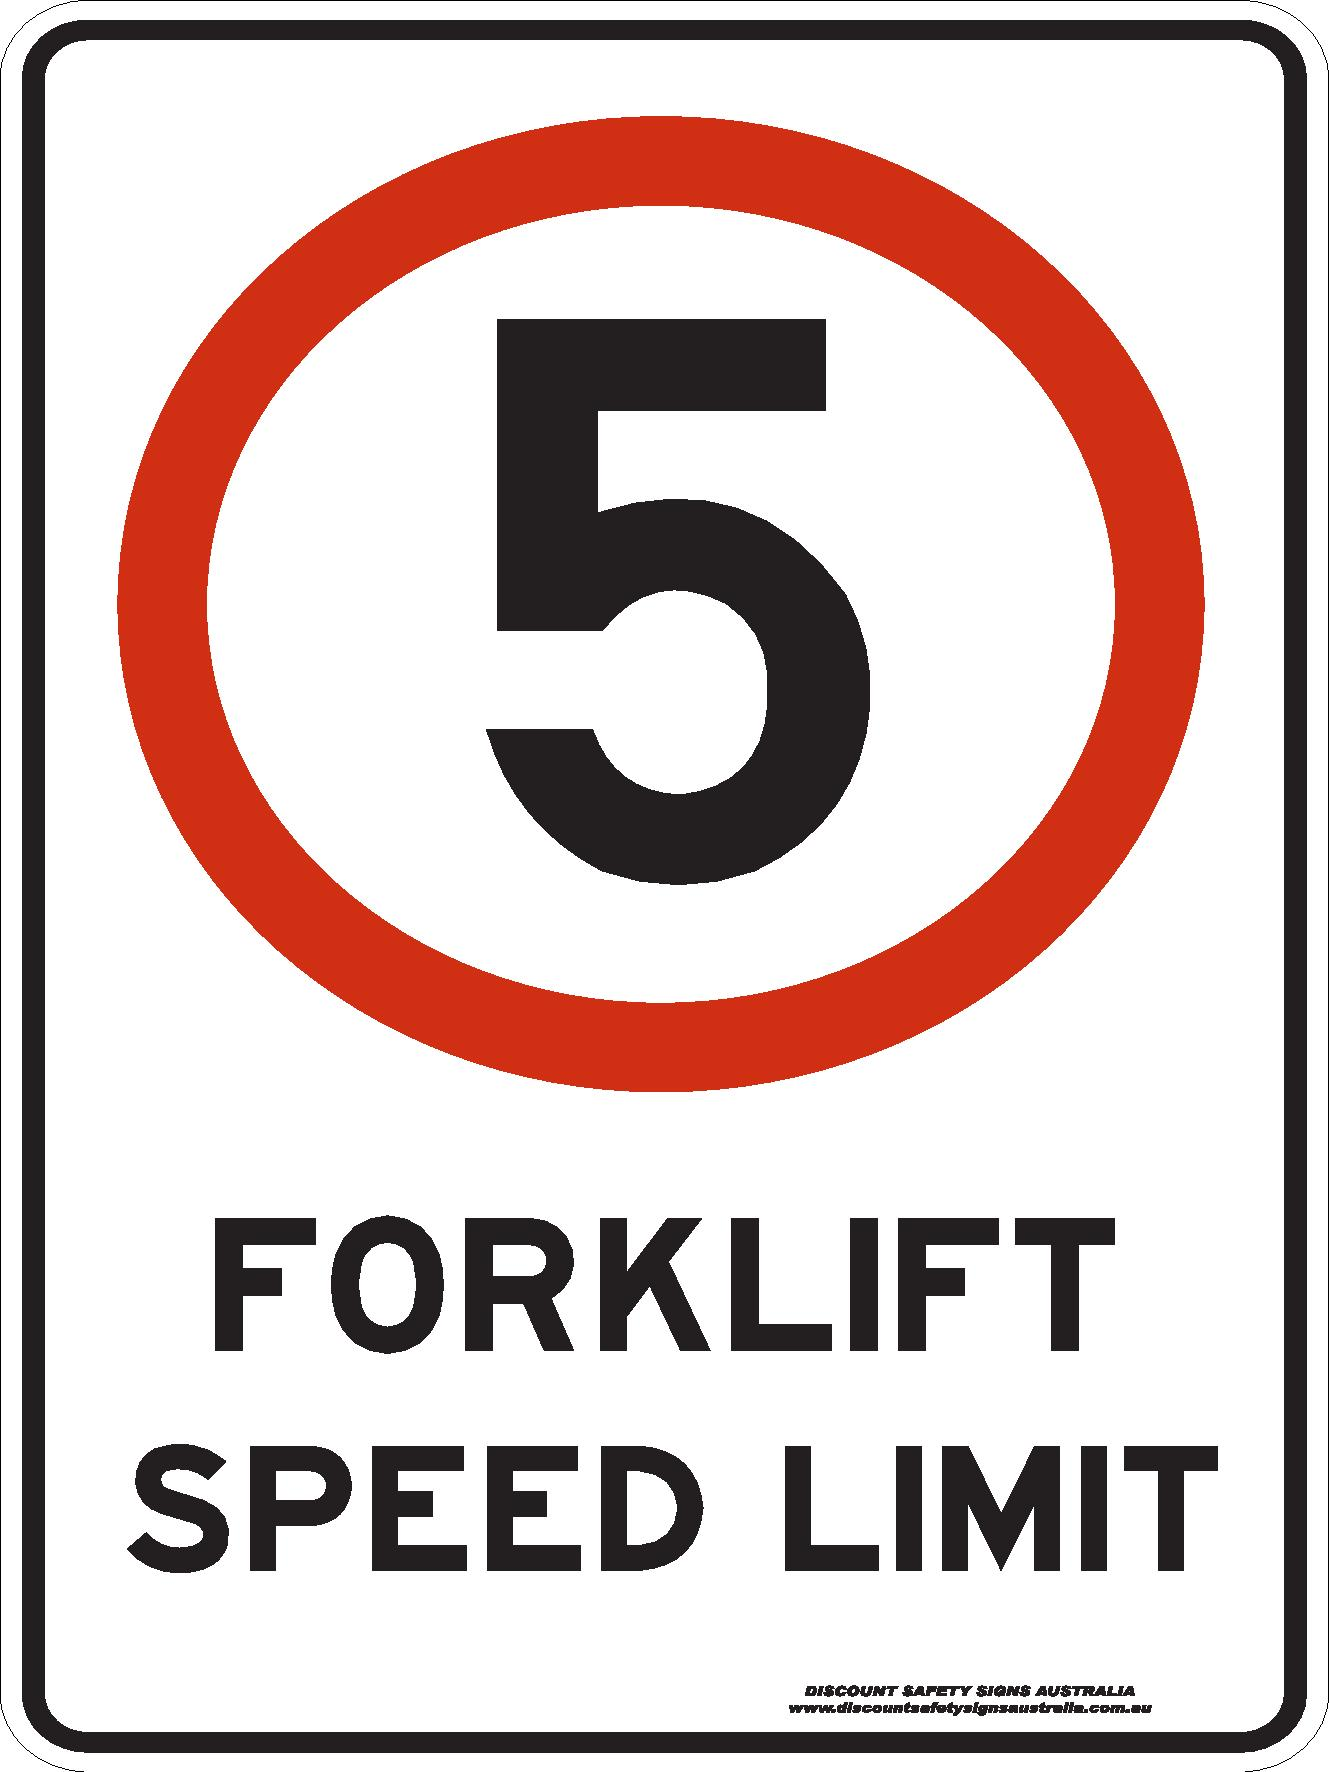 Traffic Signs FORKLIFT SPEED LIMIT 5KM